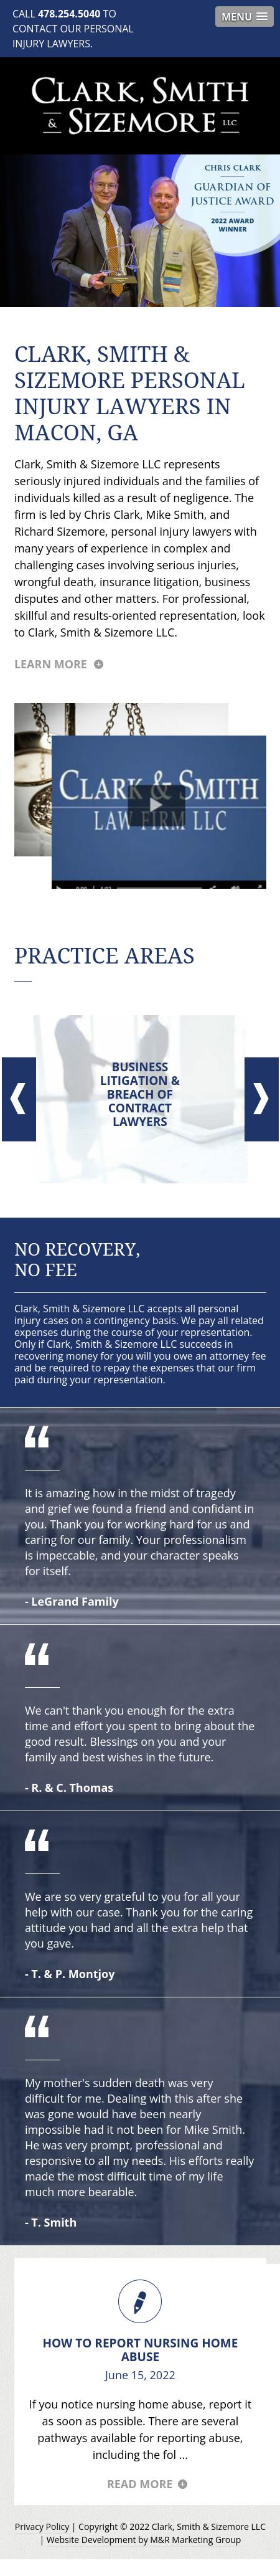 Clark & Smith Law Firm LLC - Macon GA Lawyers